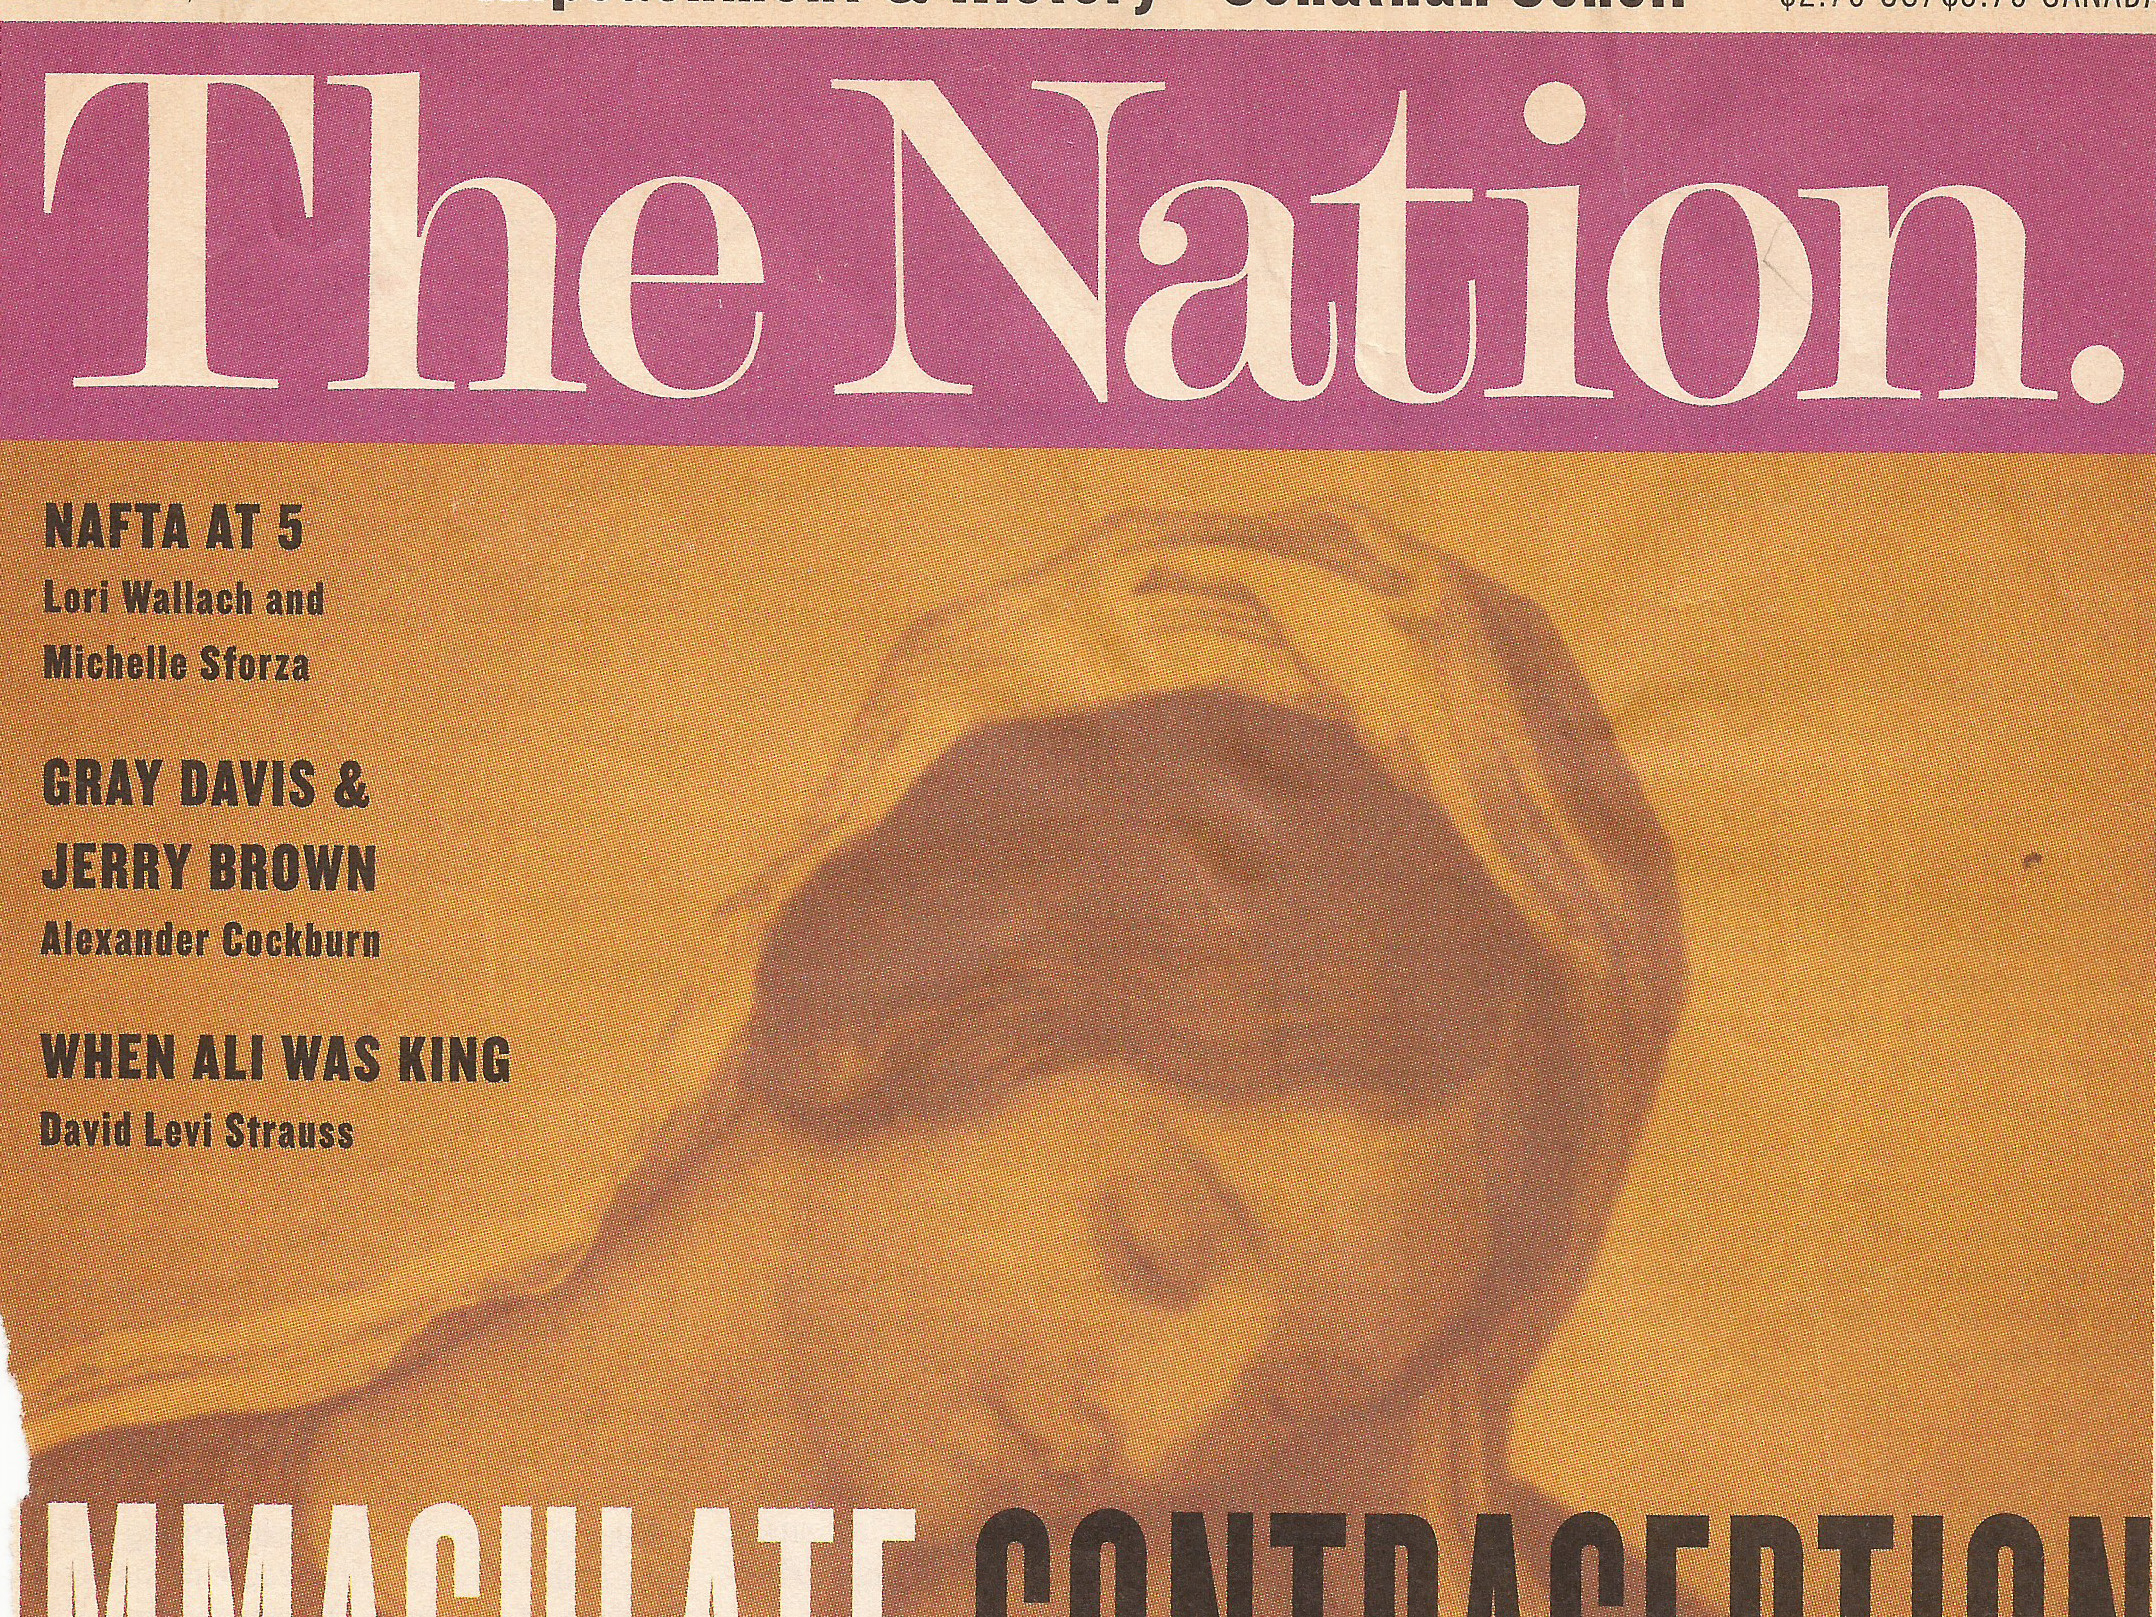 Immaculate Contraception  The Nation , 1/25/99